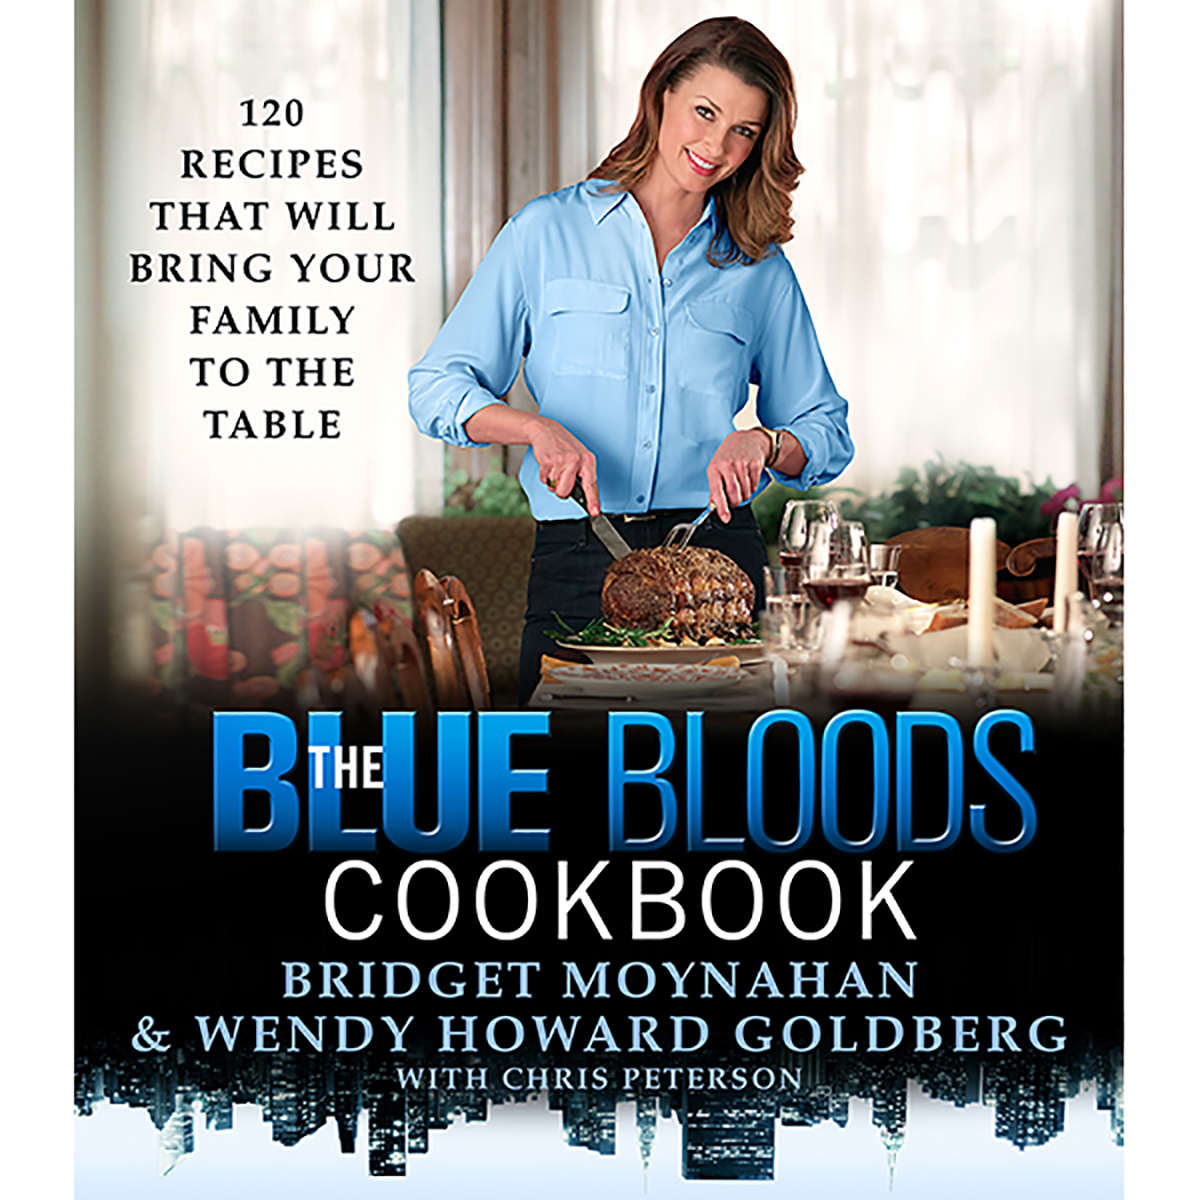 The Blue Bloods Cookbook (Hardcover) Book